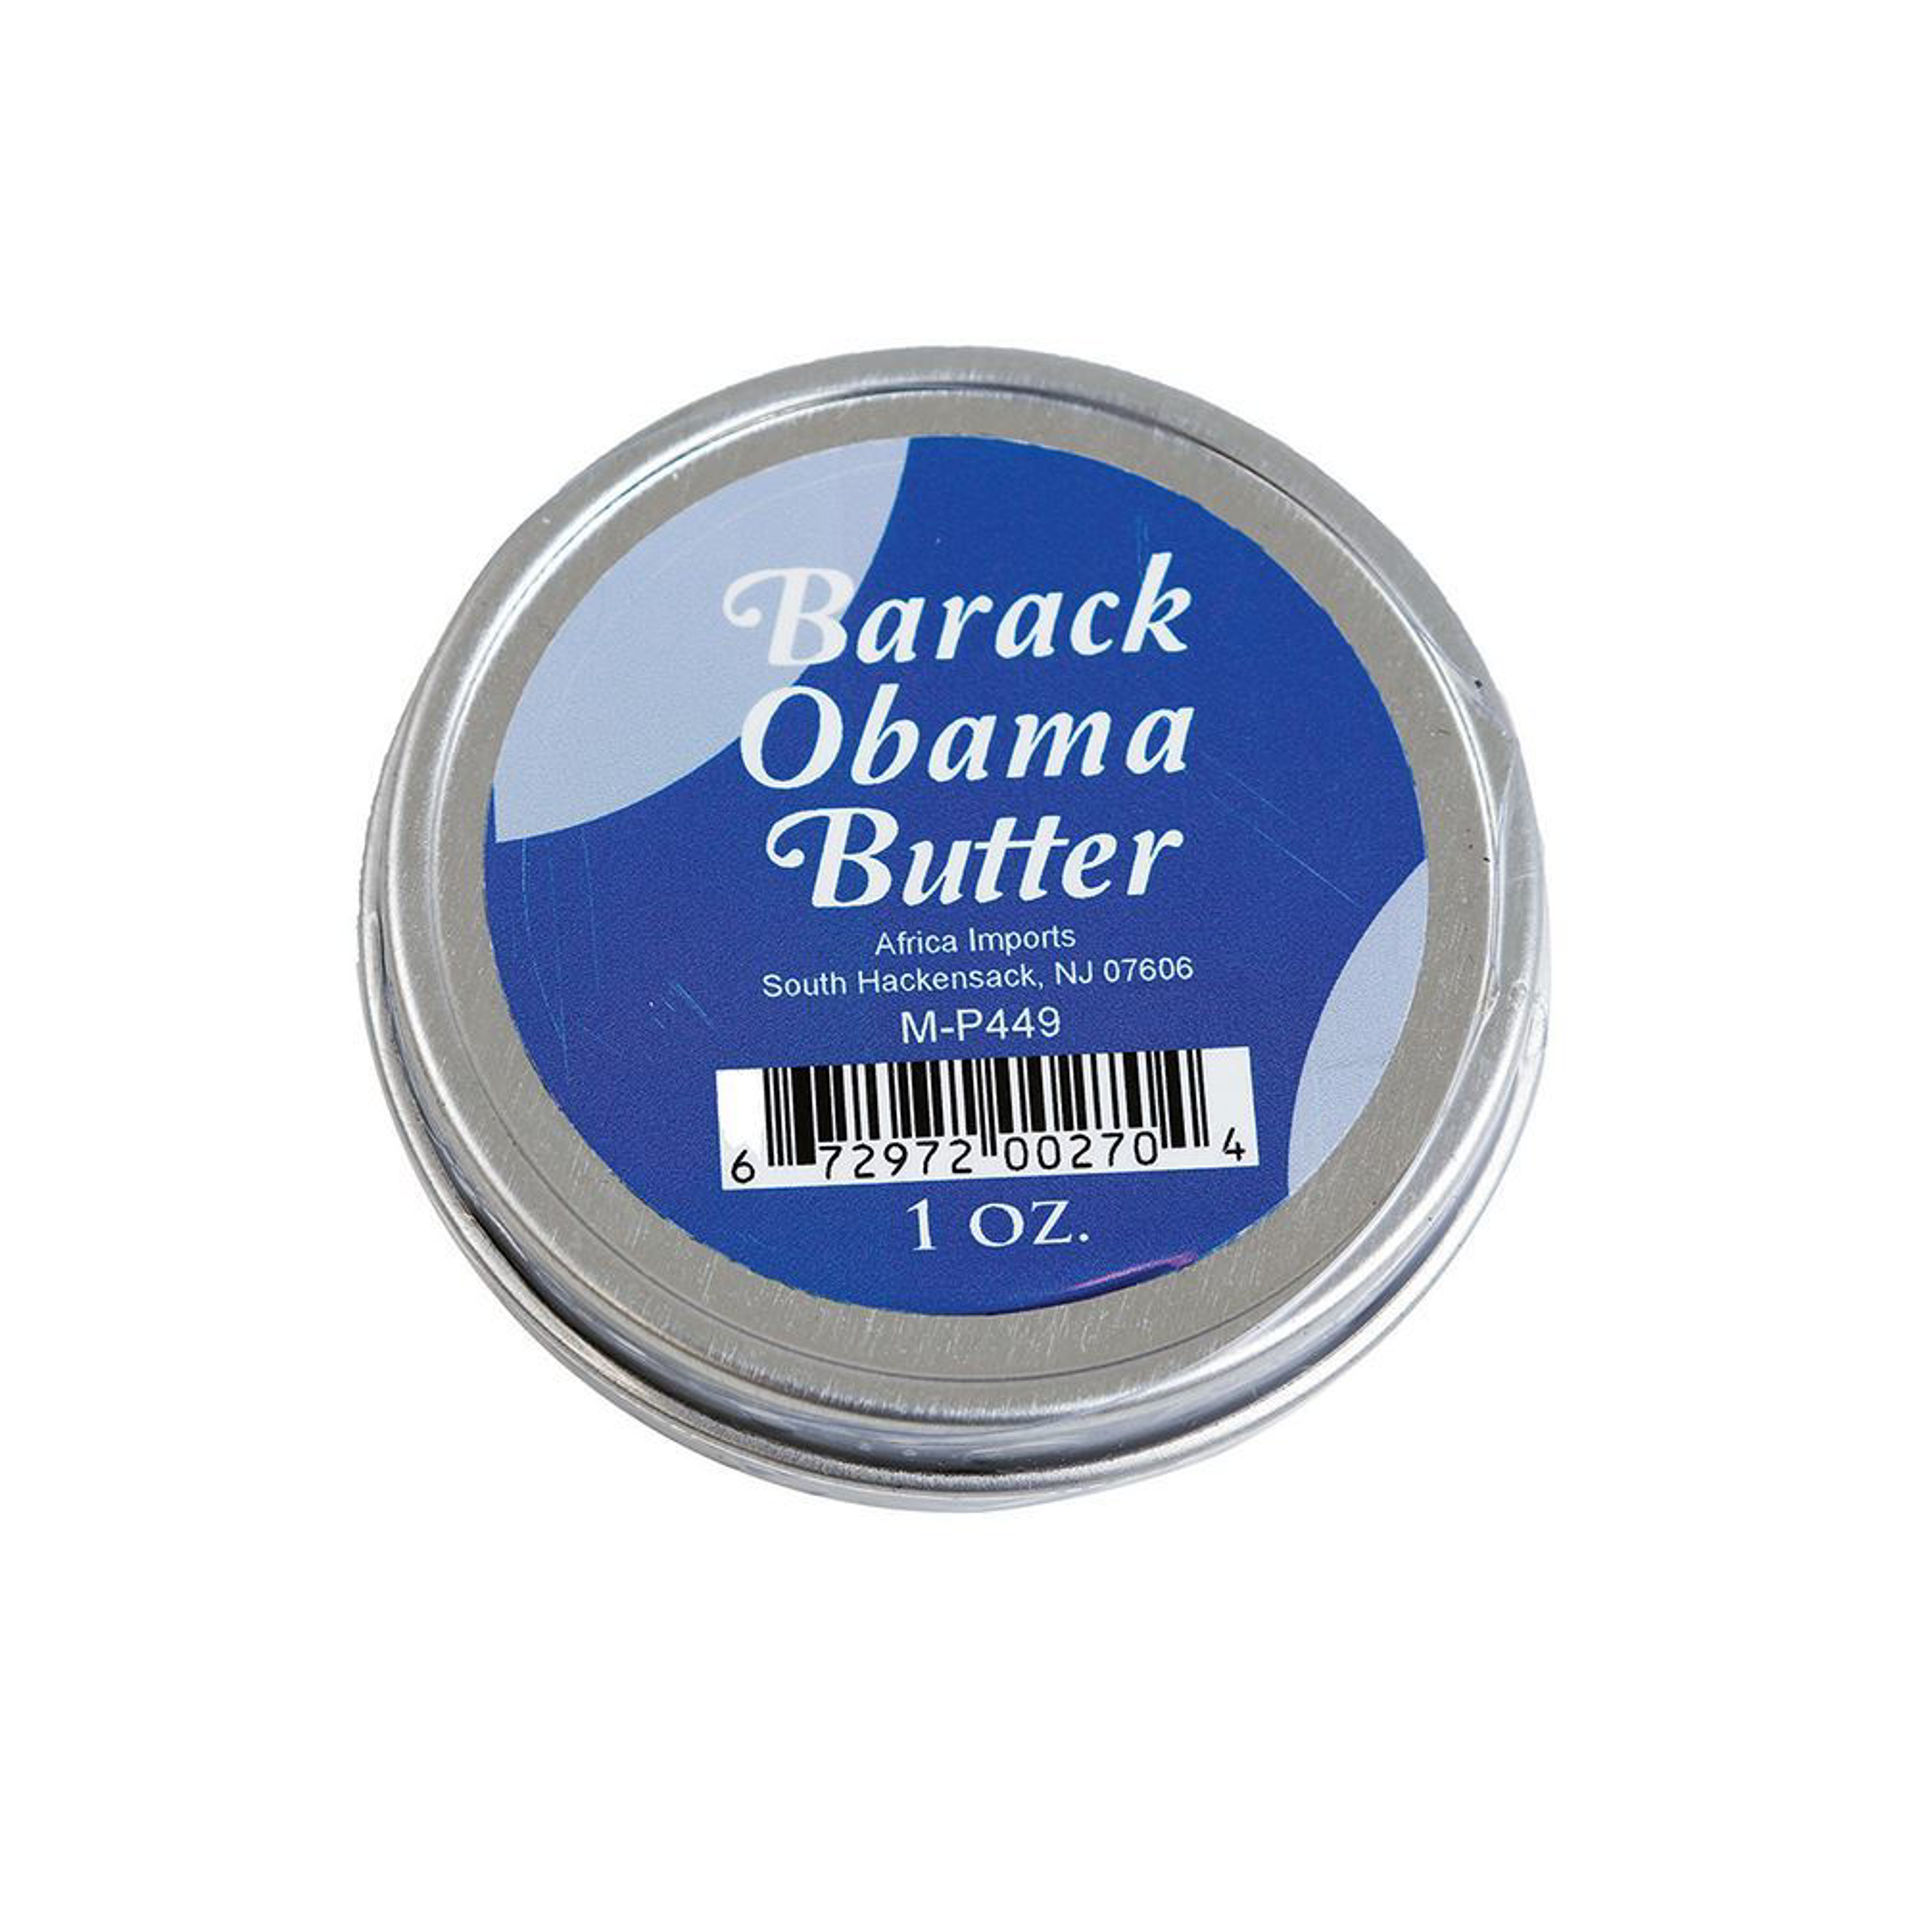 Picture of Barack Obama Butter - 1 oz.